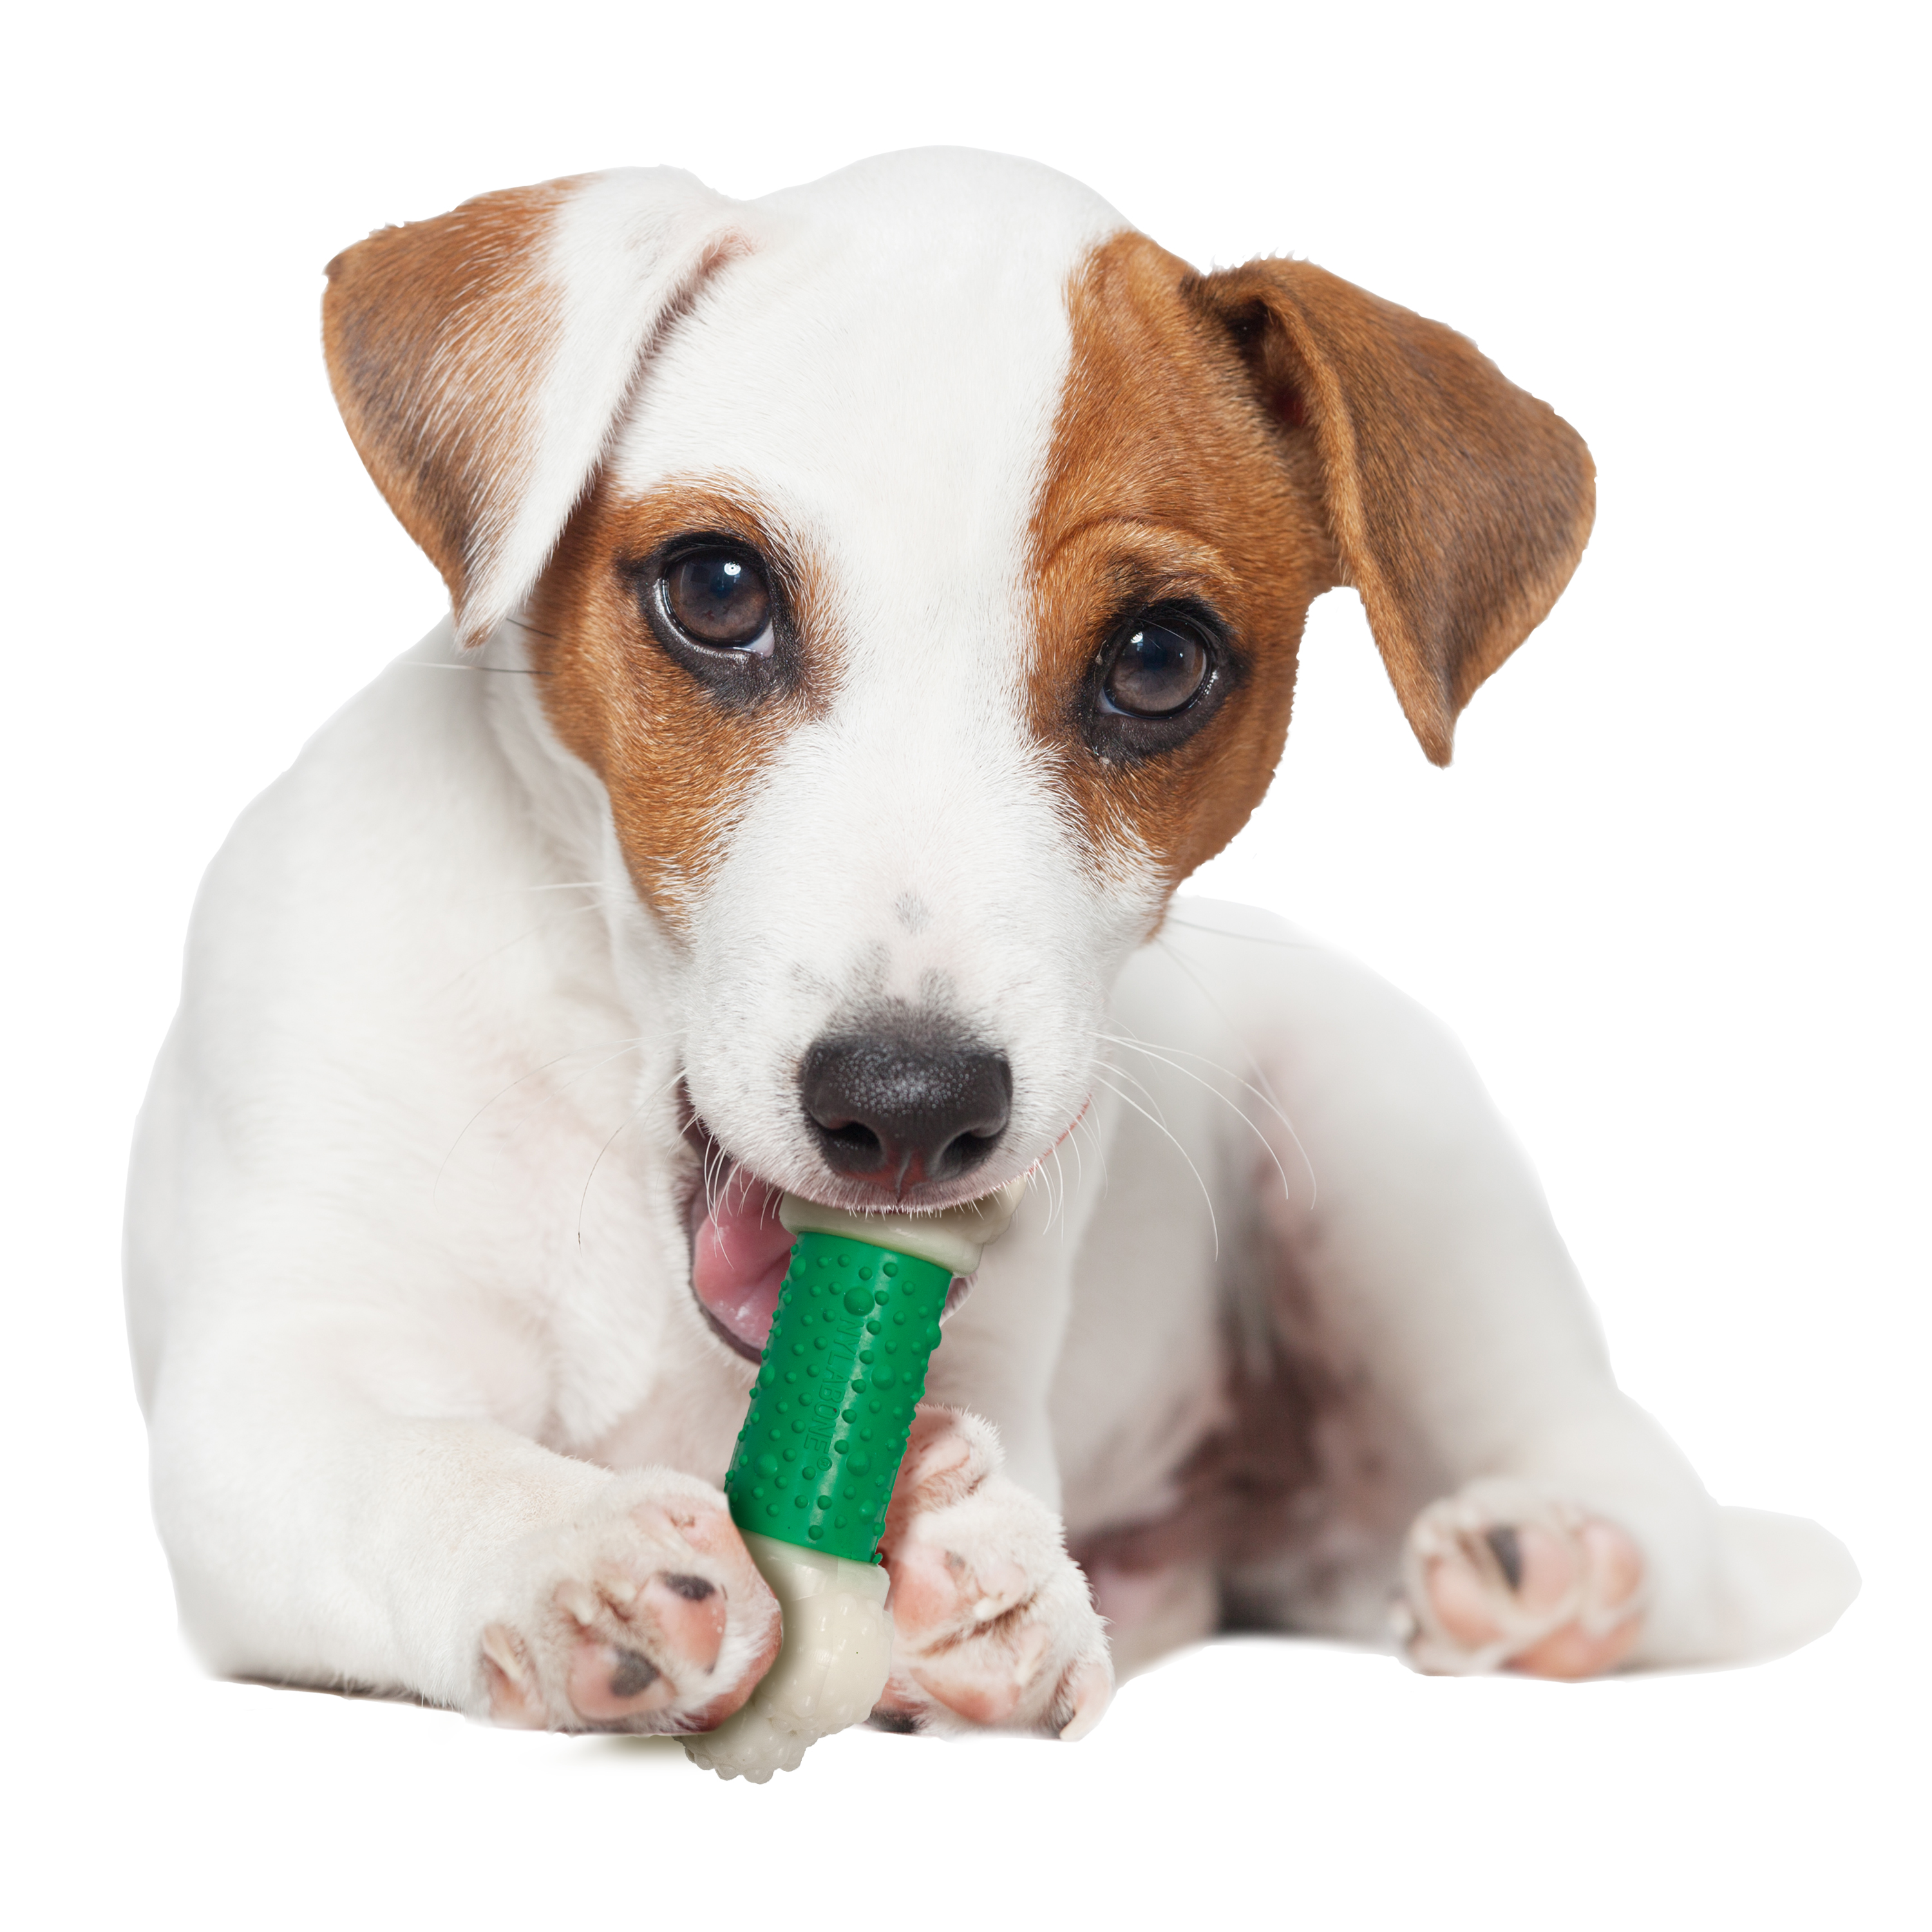 Nylabone Dura Chew Bacon Flavored Double Action Bone Dog Chew Toy, Regular